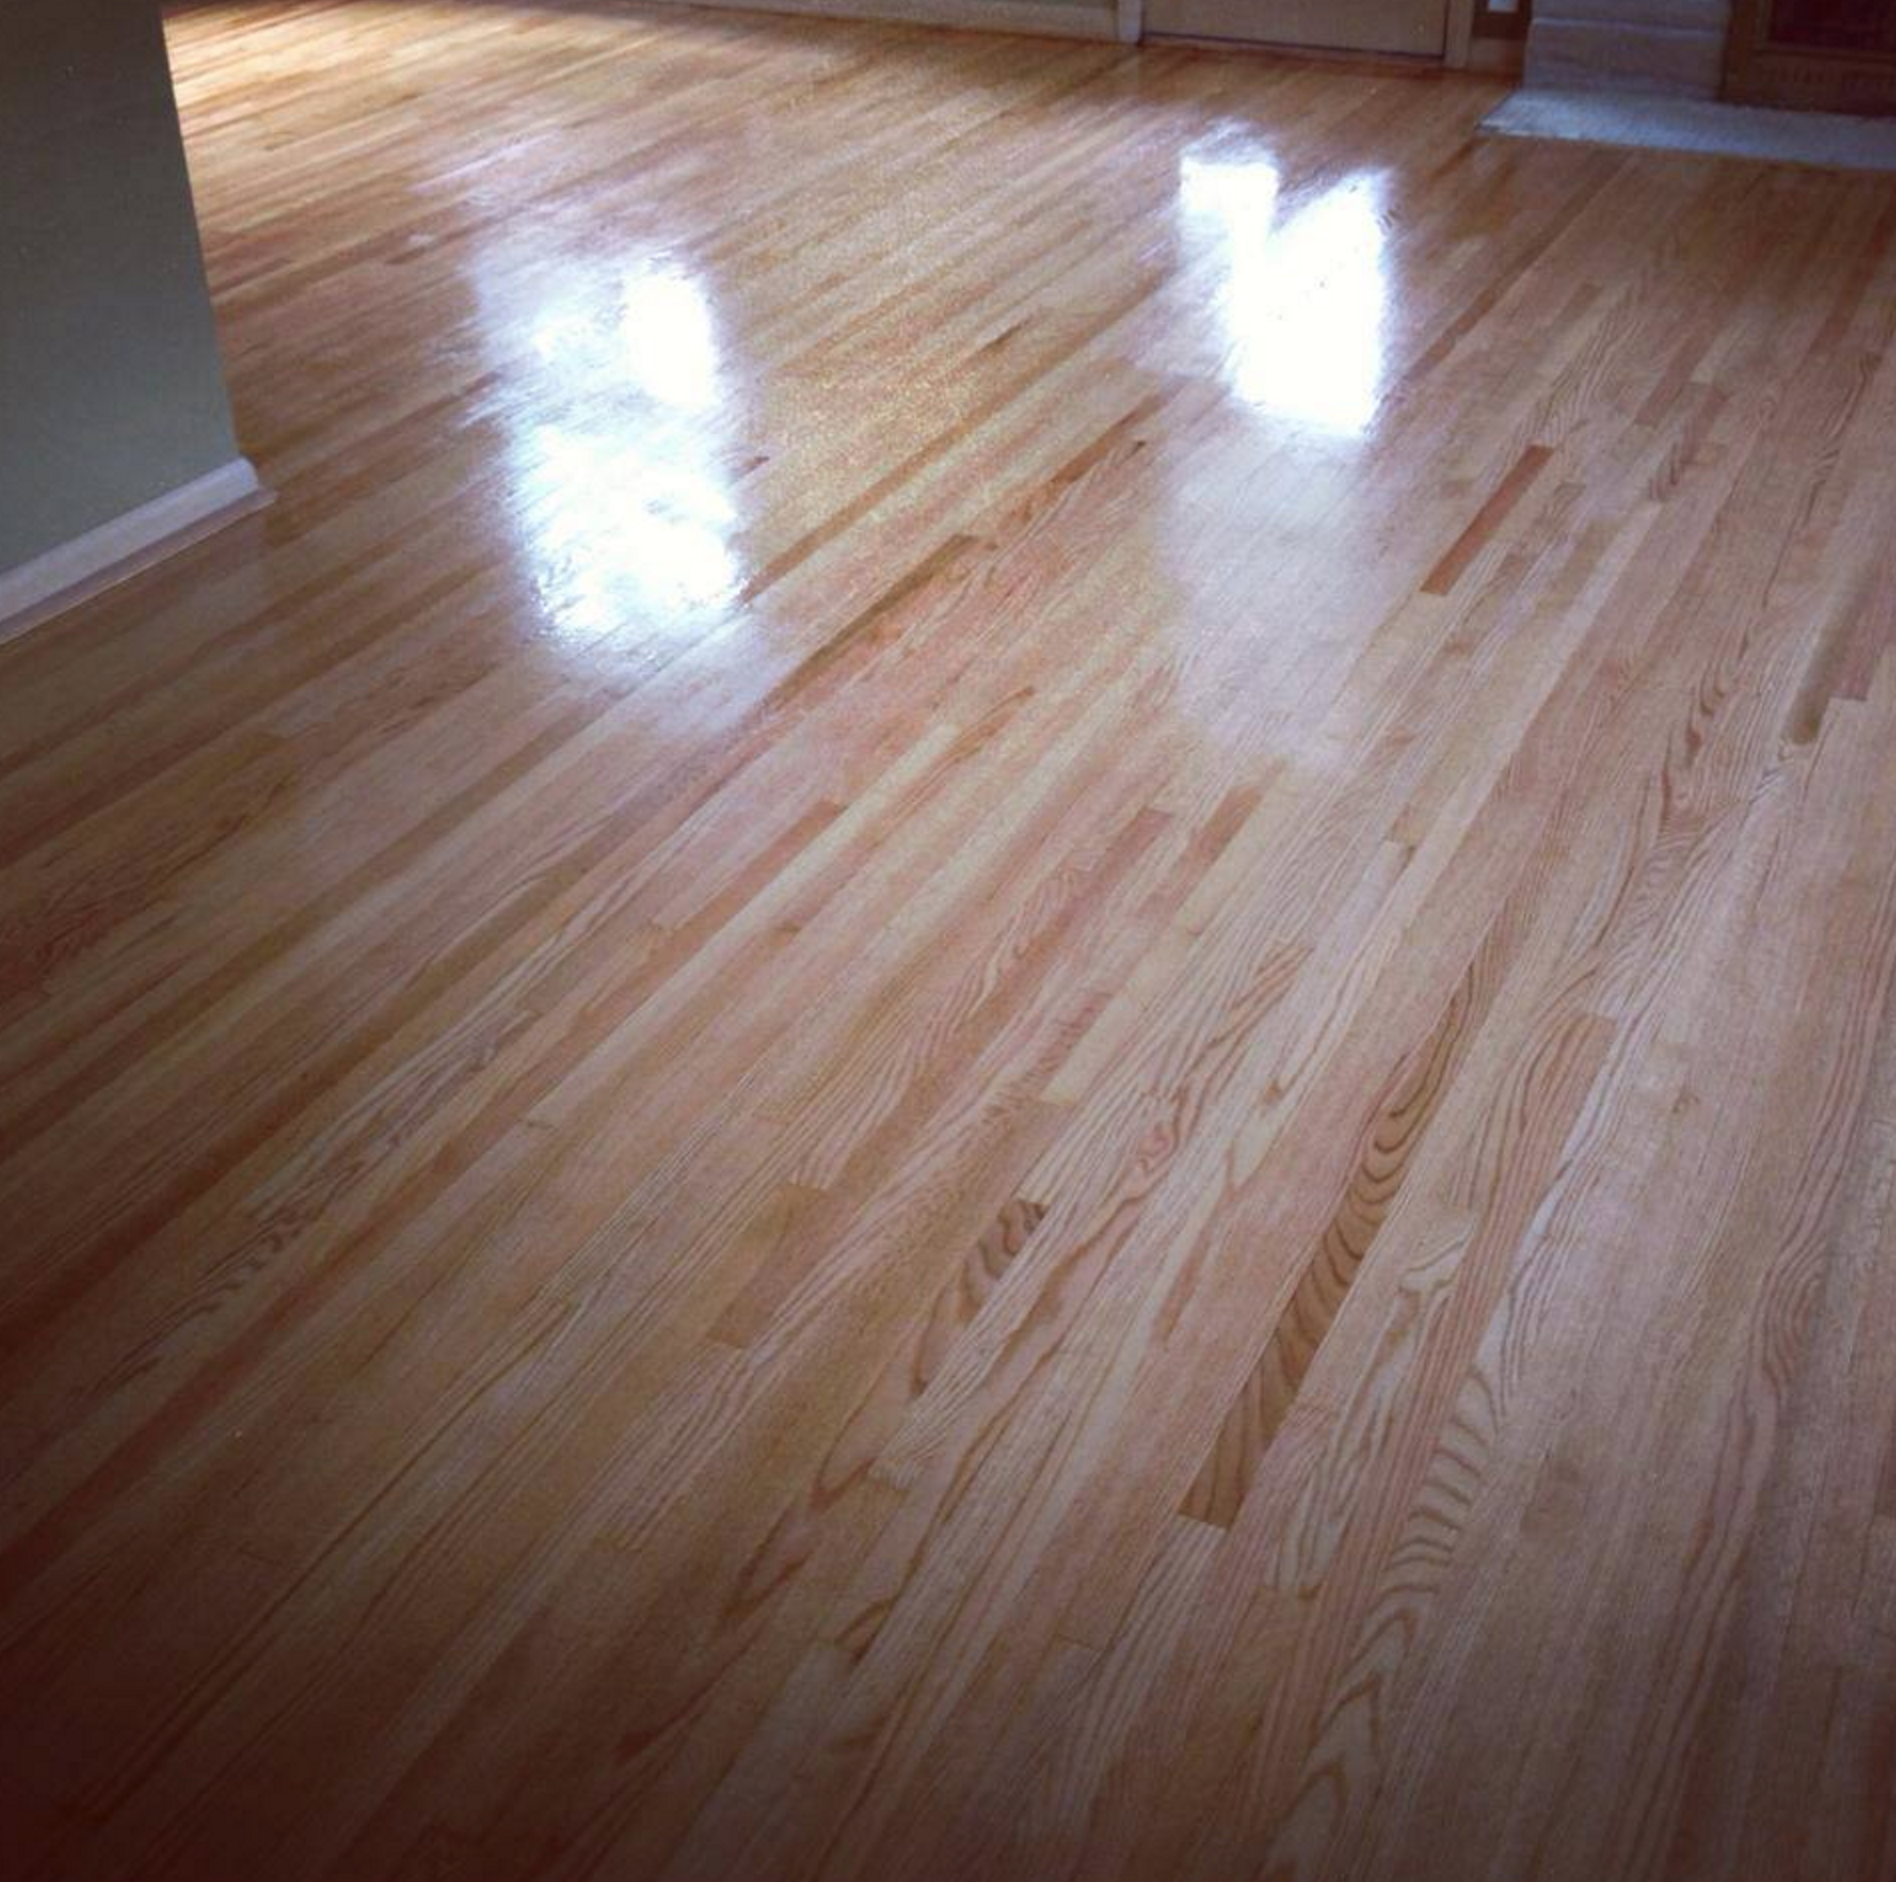 Refinished Light Red Oak Hardwood Floors In Richfield